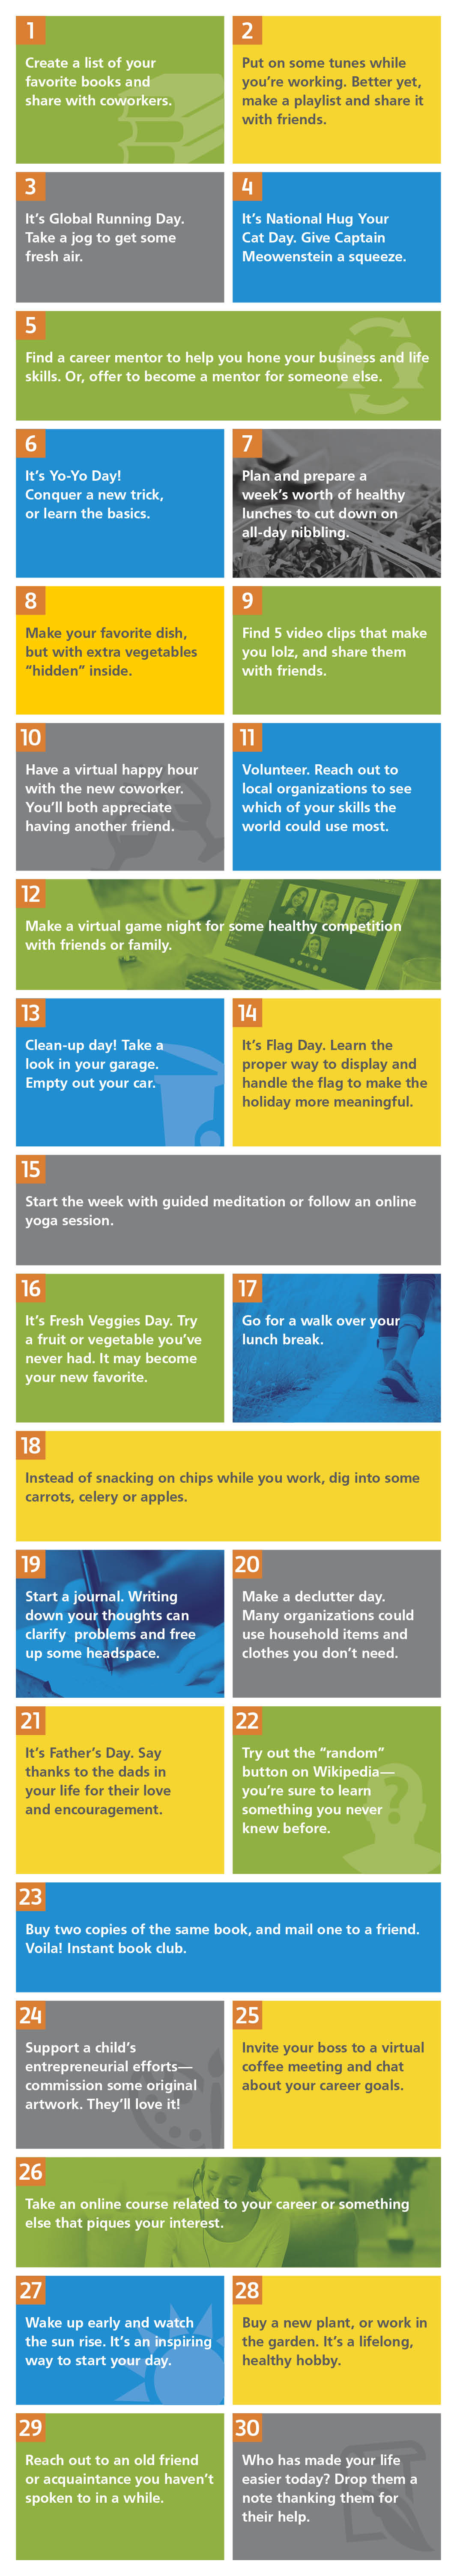 calendar of ideas to celebrate Employee Wellbeing Month